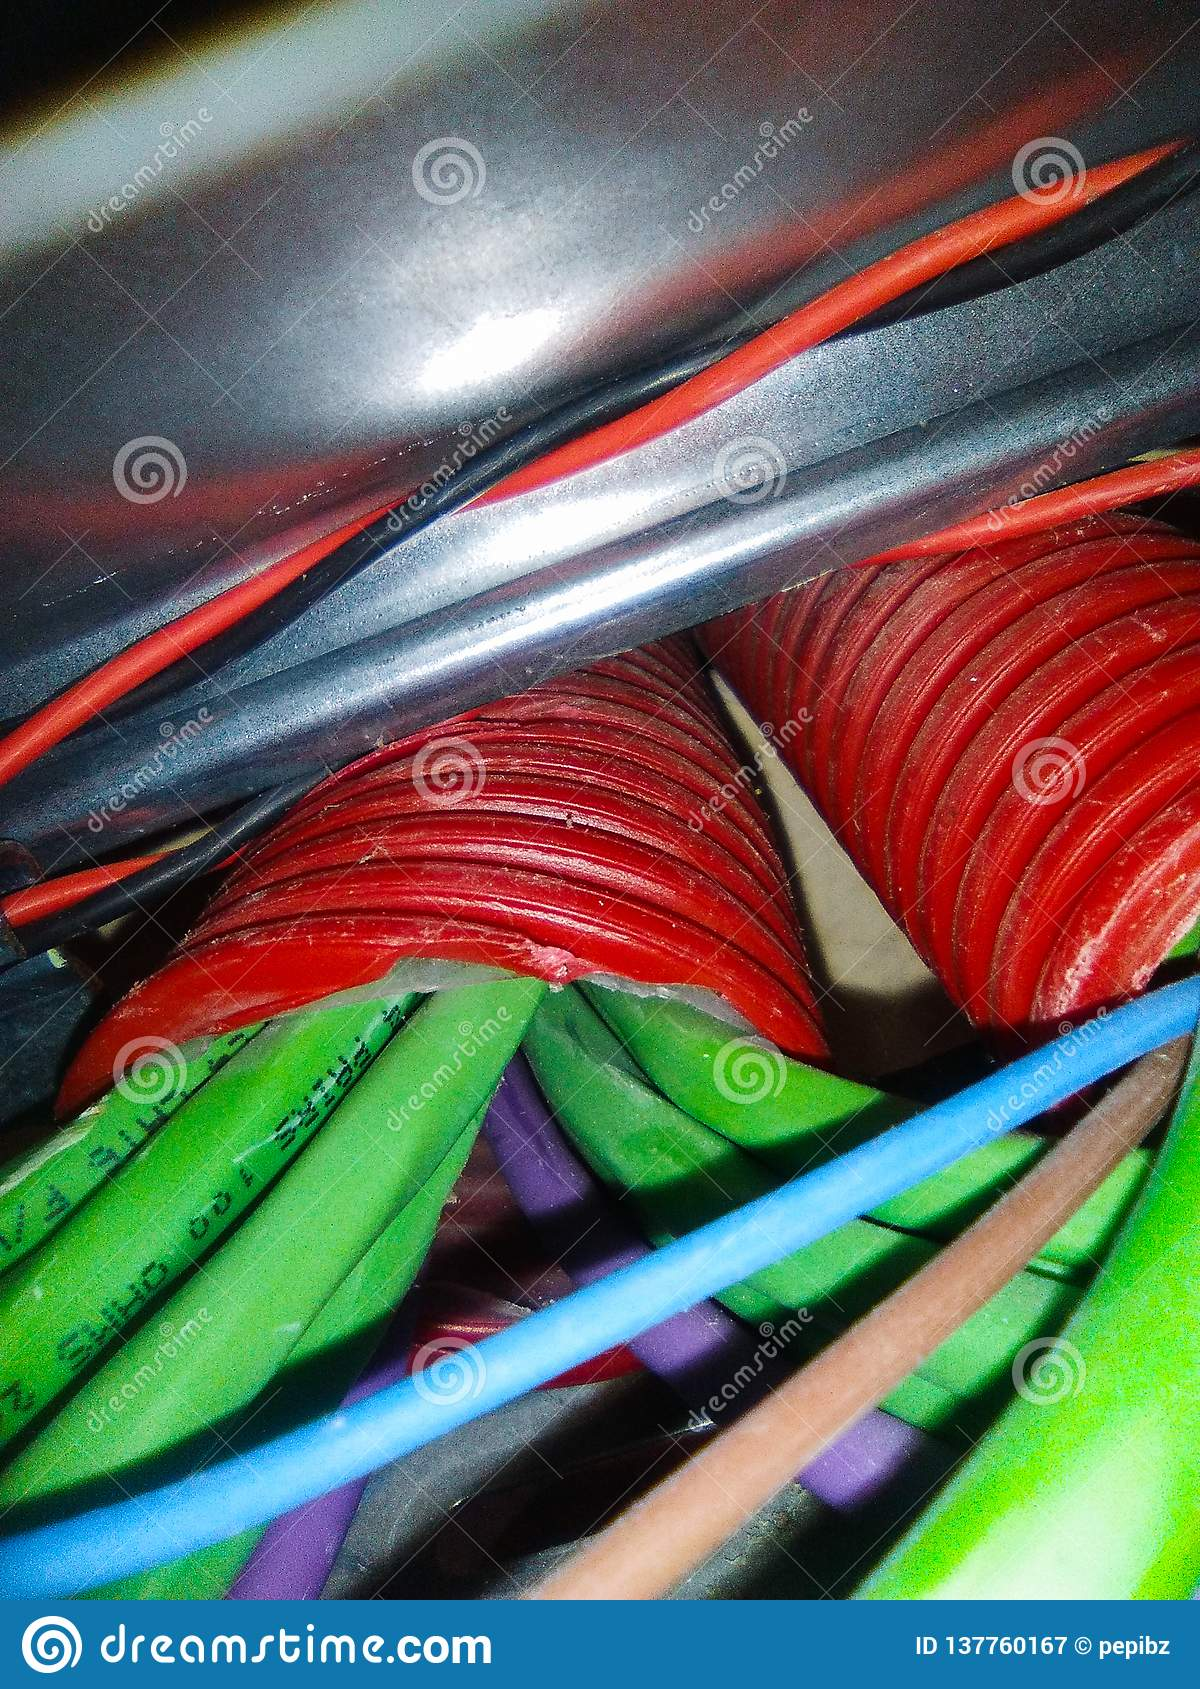 Electrical and network cables